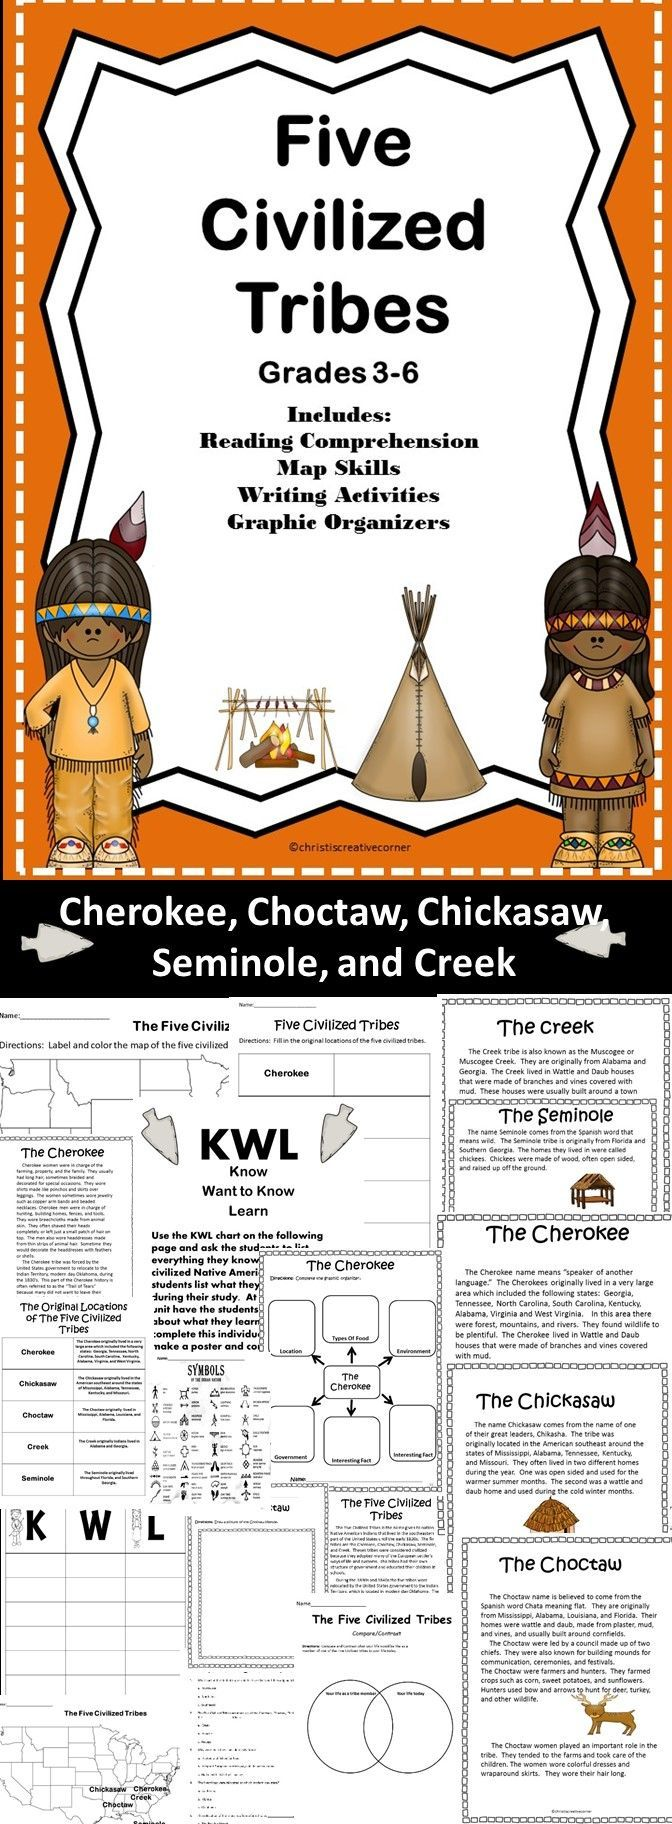 Five Civilized Tribe Is A Brief History Of The Cherokee Choctaw Chickasaw Seminole And The Creek Tribes This Product Includes Reading Comprehension